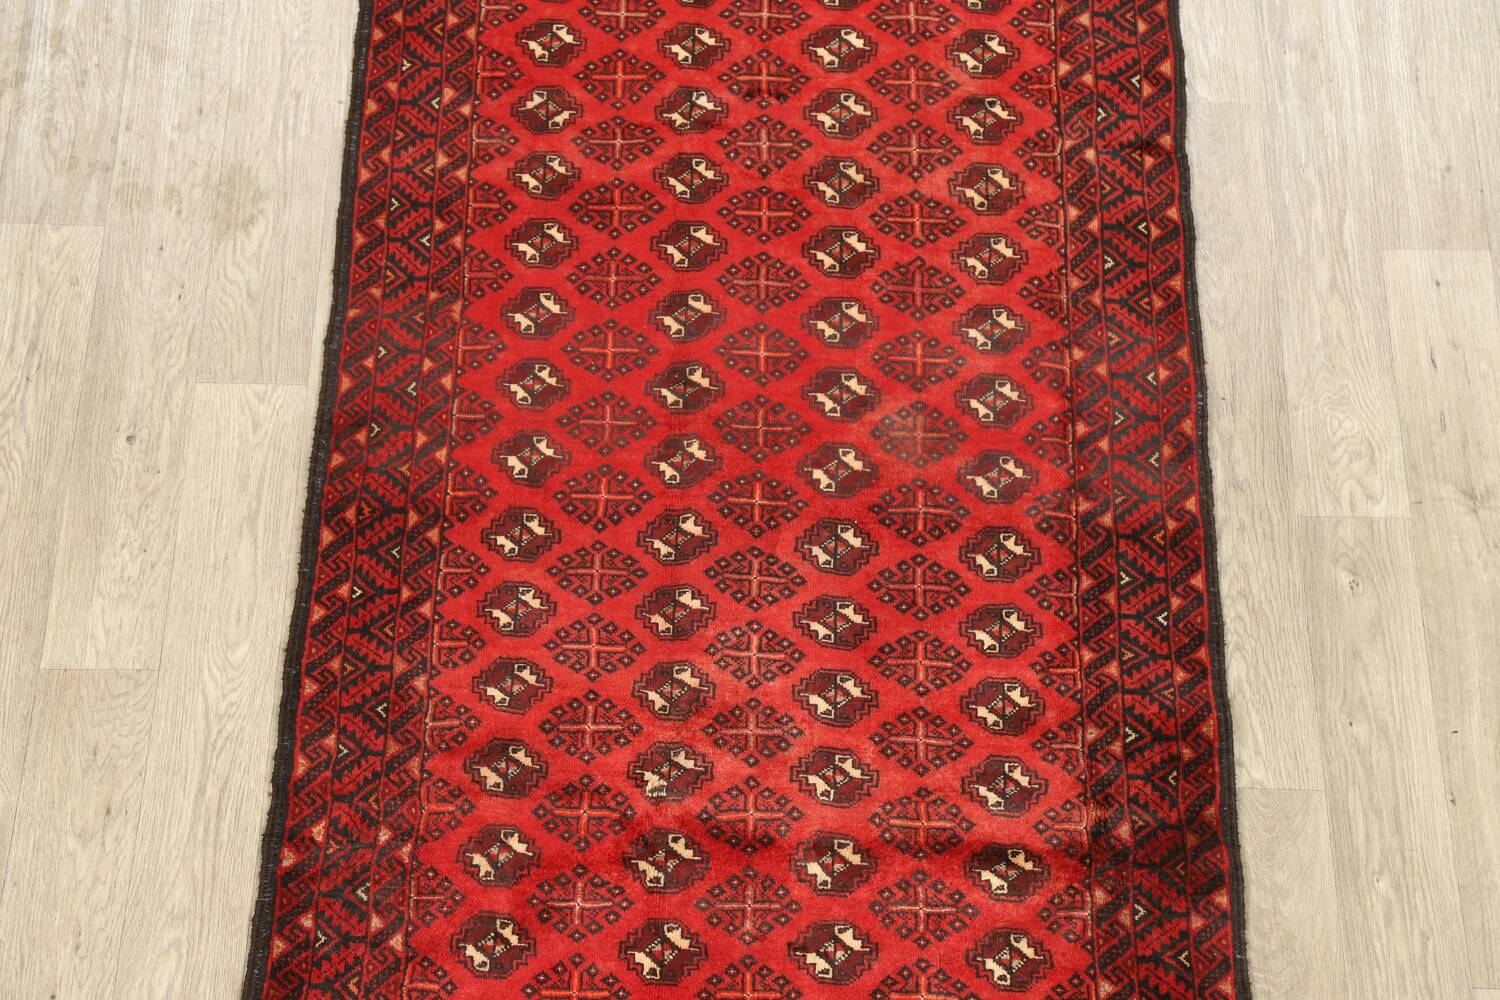 All-Over Red Geometric Balouch Persian Area Rug 4x7 image 3